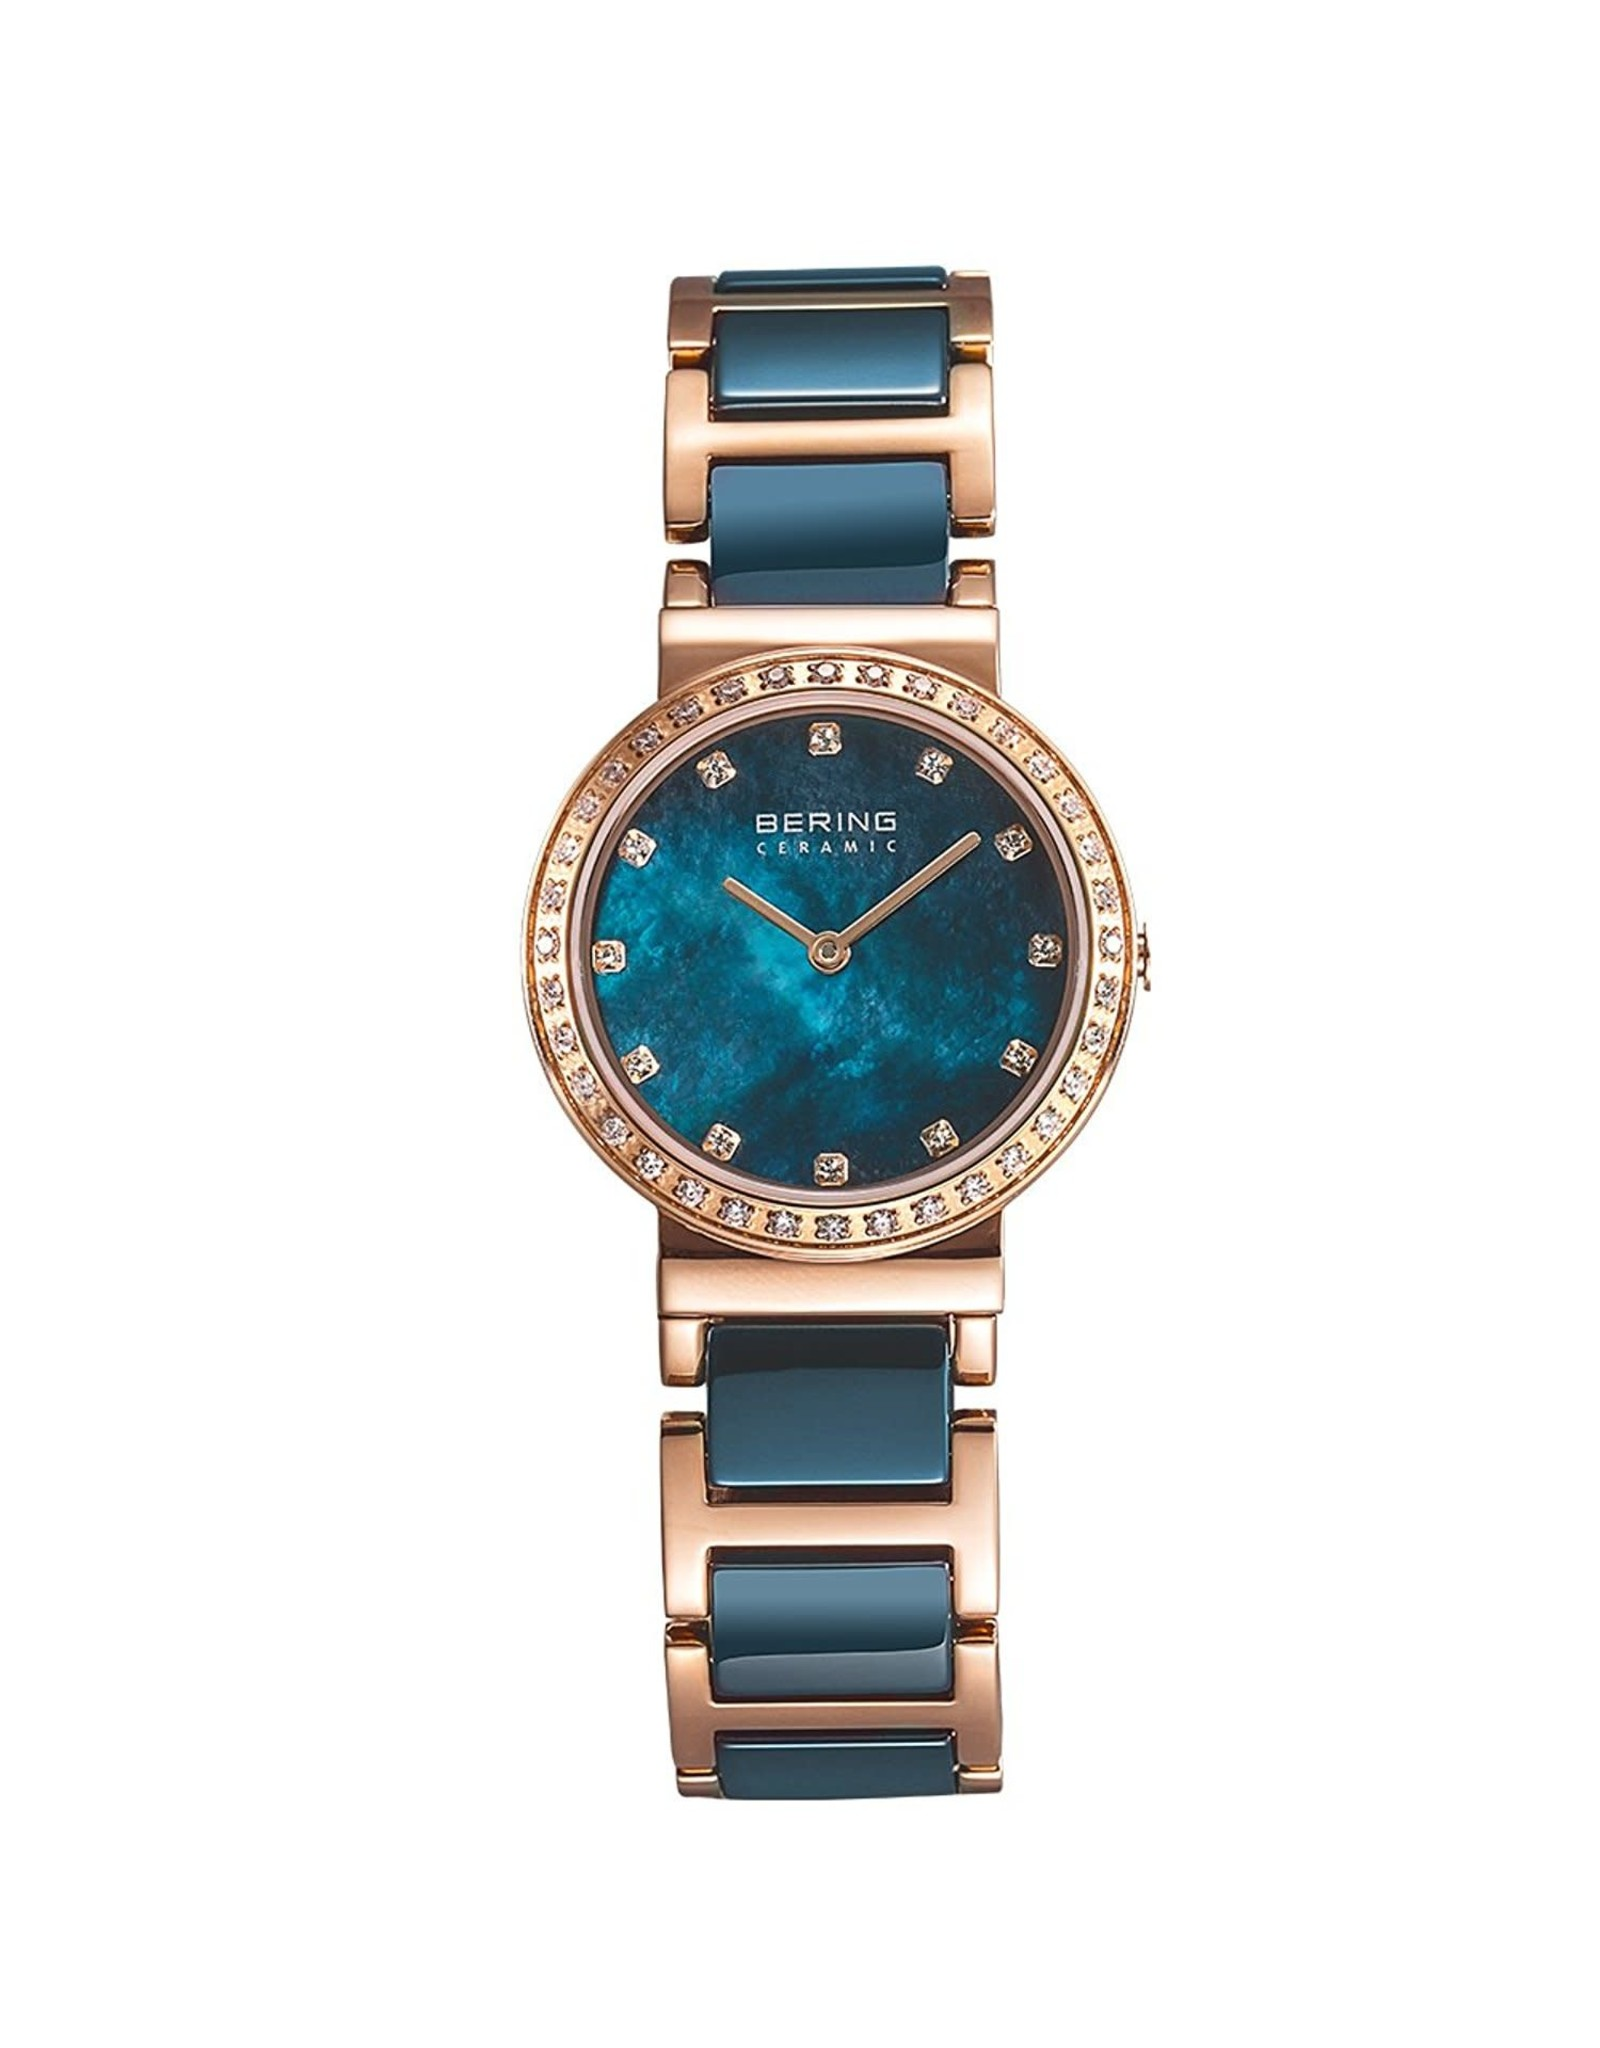 Ladies Blue Ceramic Bering Watch with Crystal Dial and Bezel